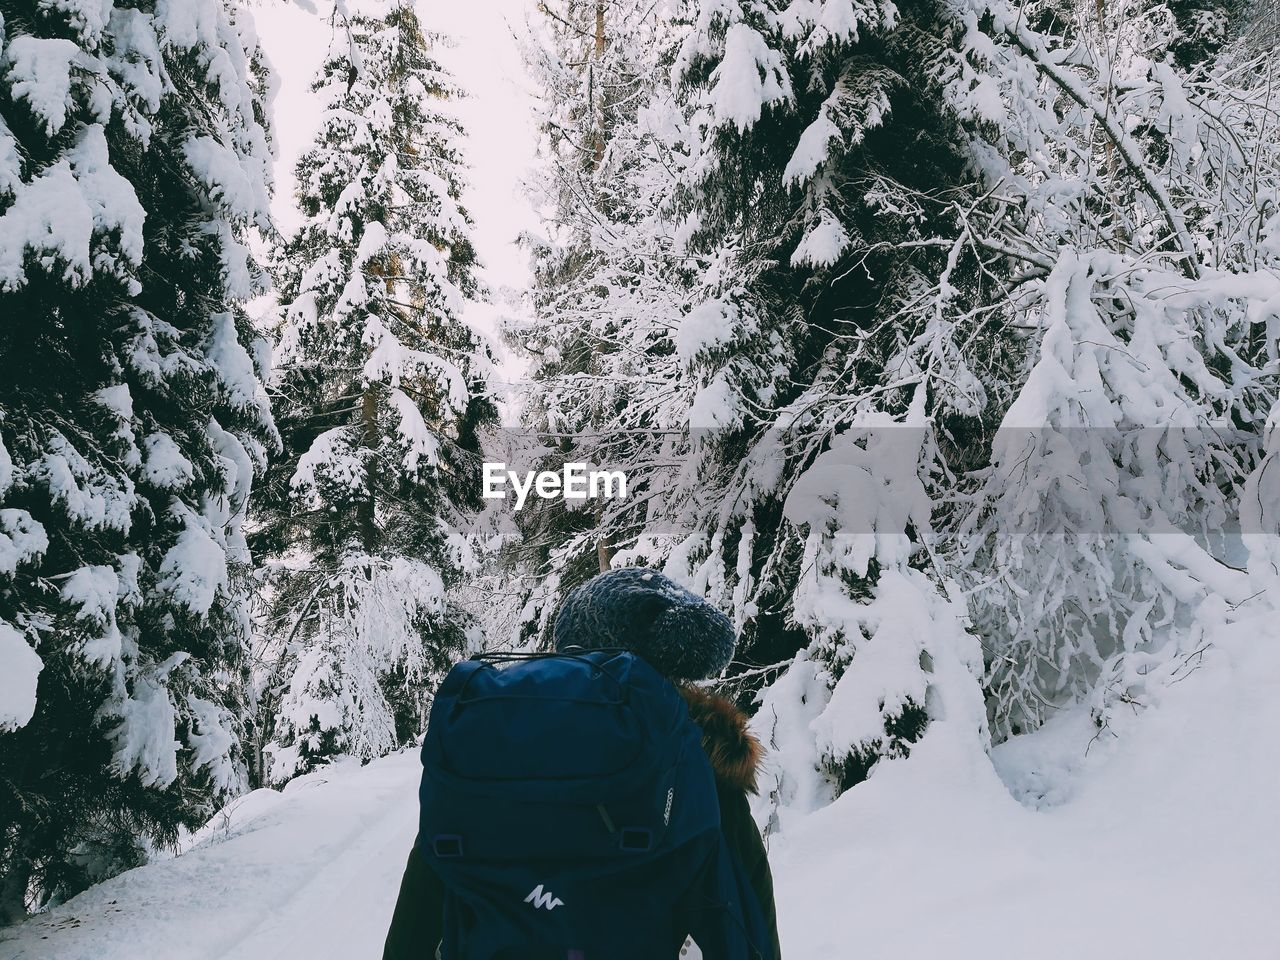 Rear View Of Woman With Backpack Hiking Amidst Snow Covered Trees